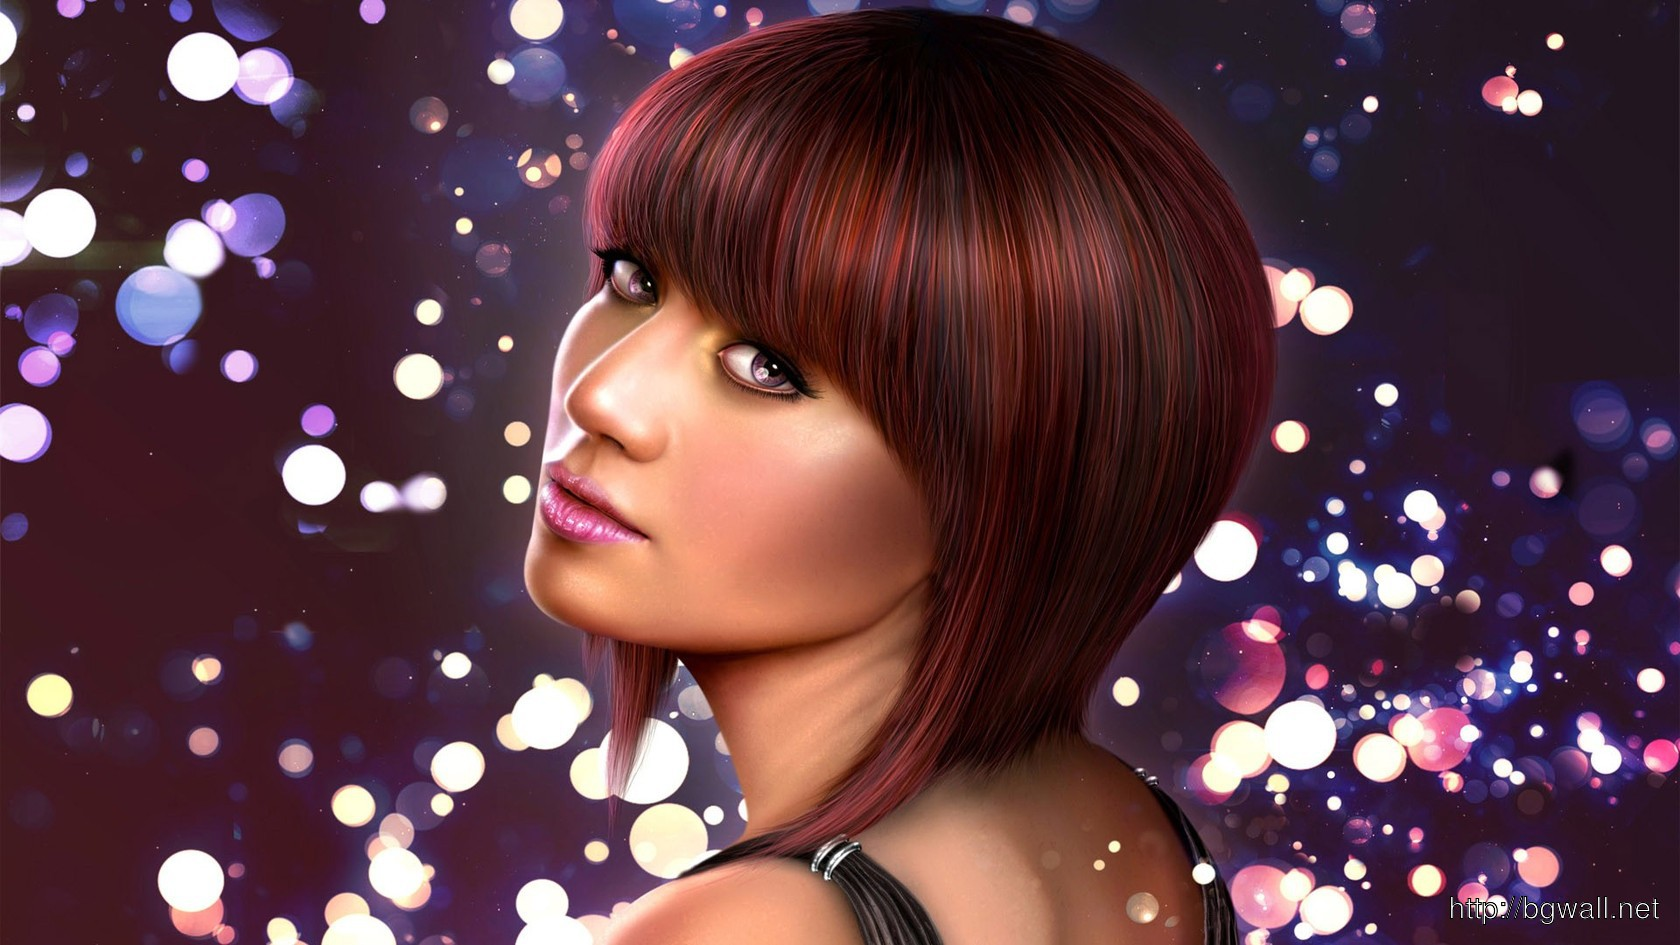 Red Haired Woman Wallpaper 3225 Full Size